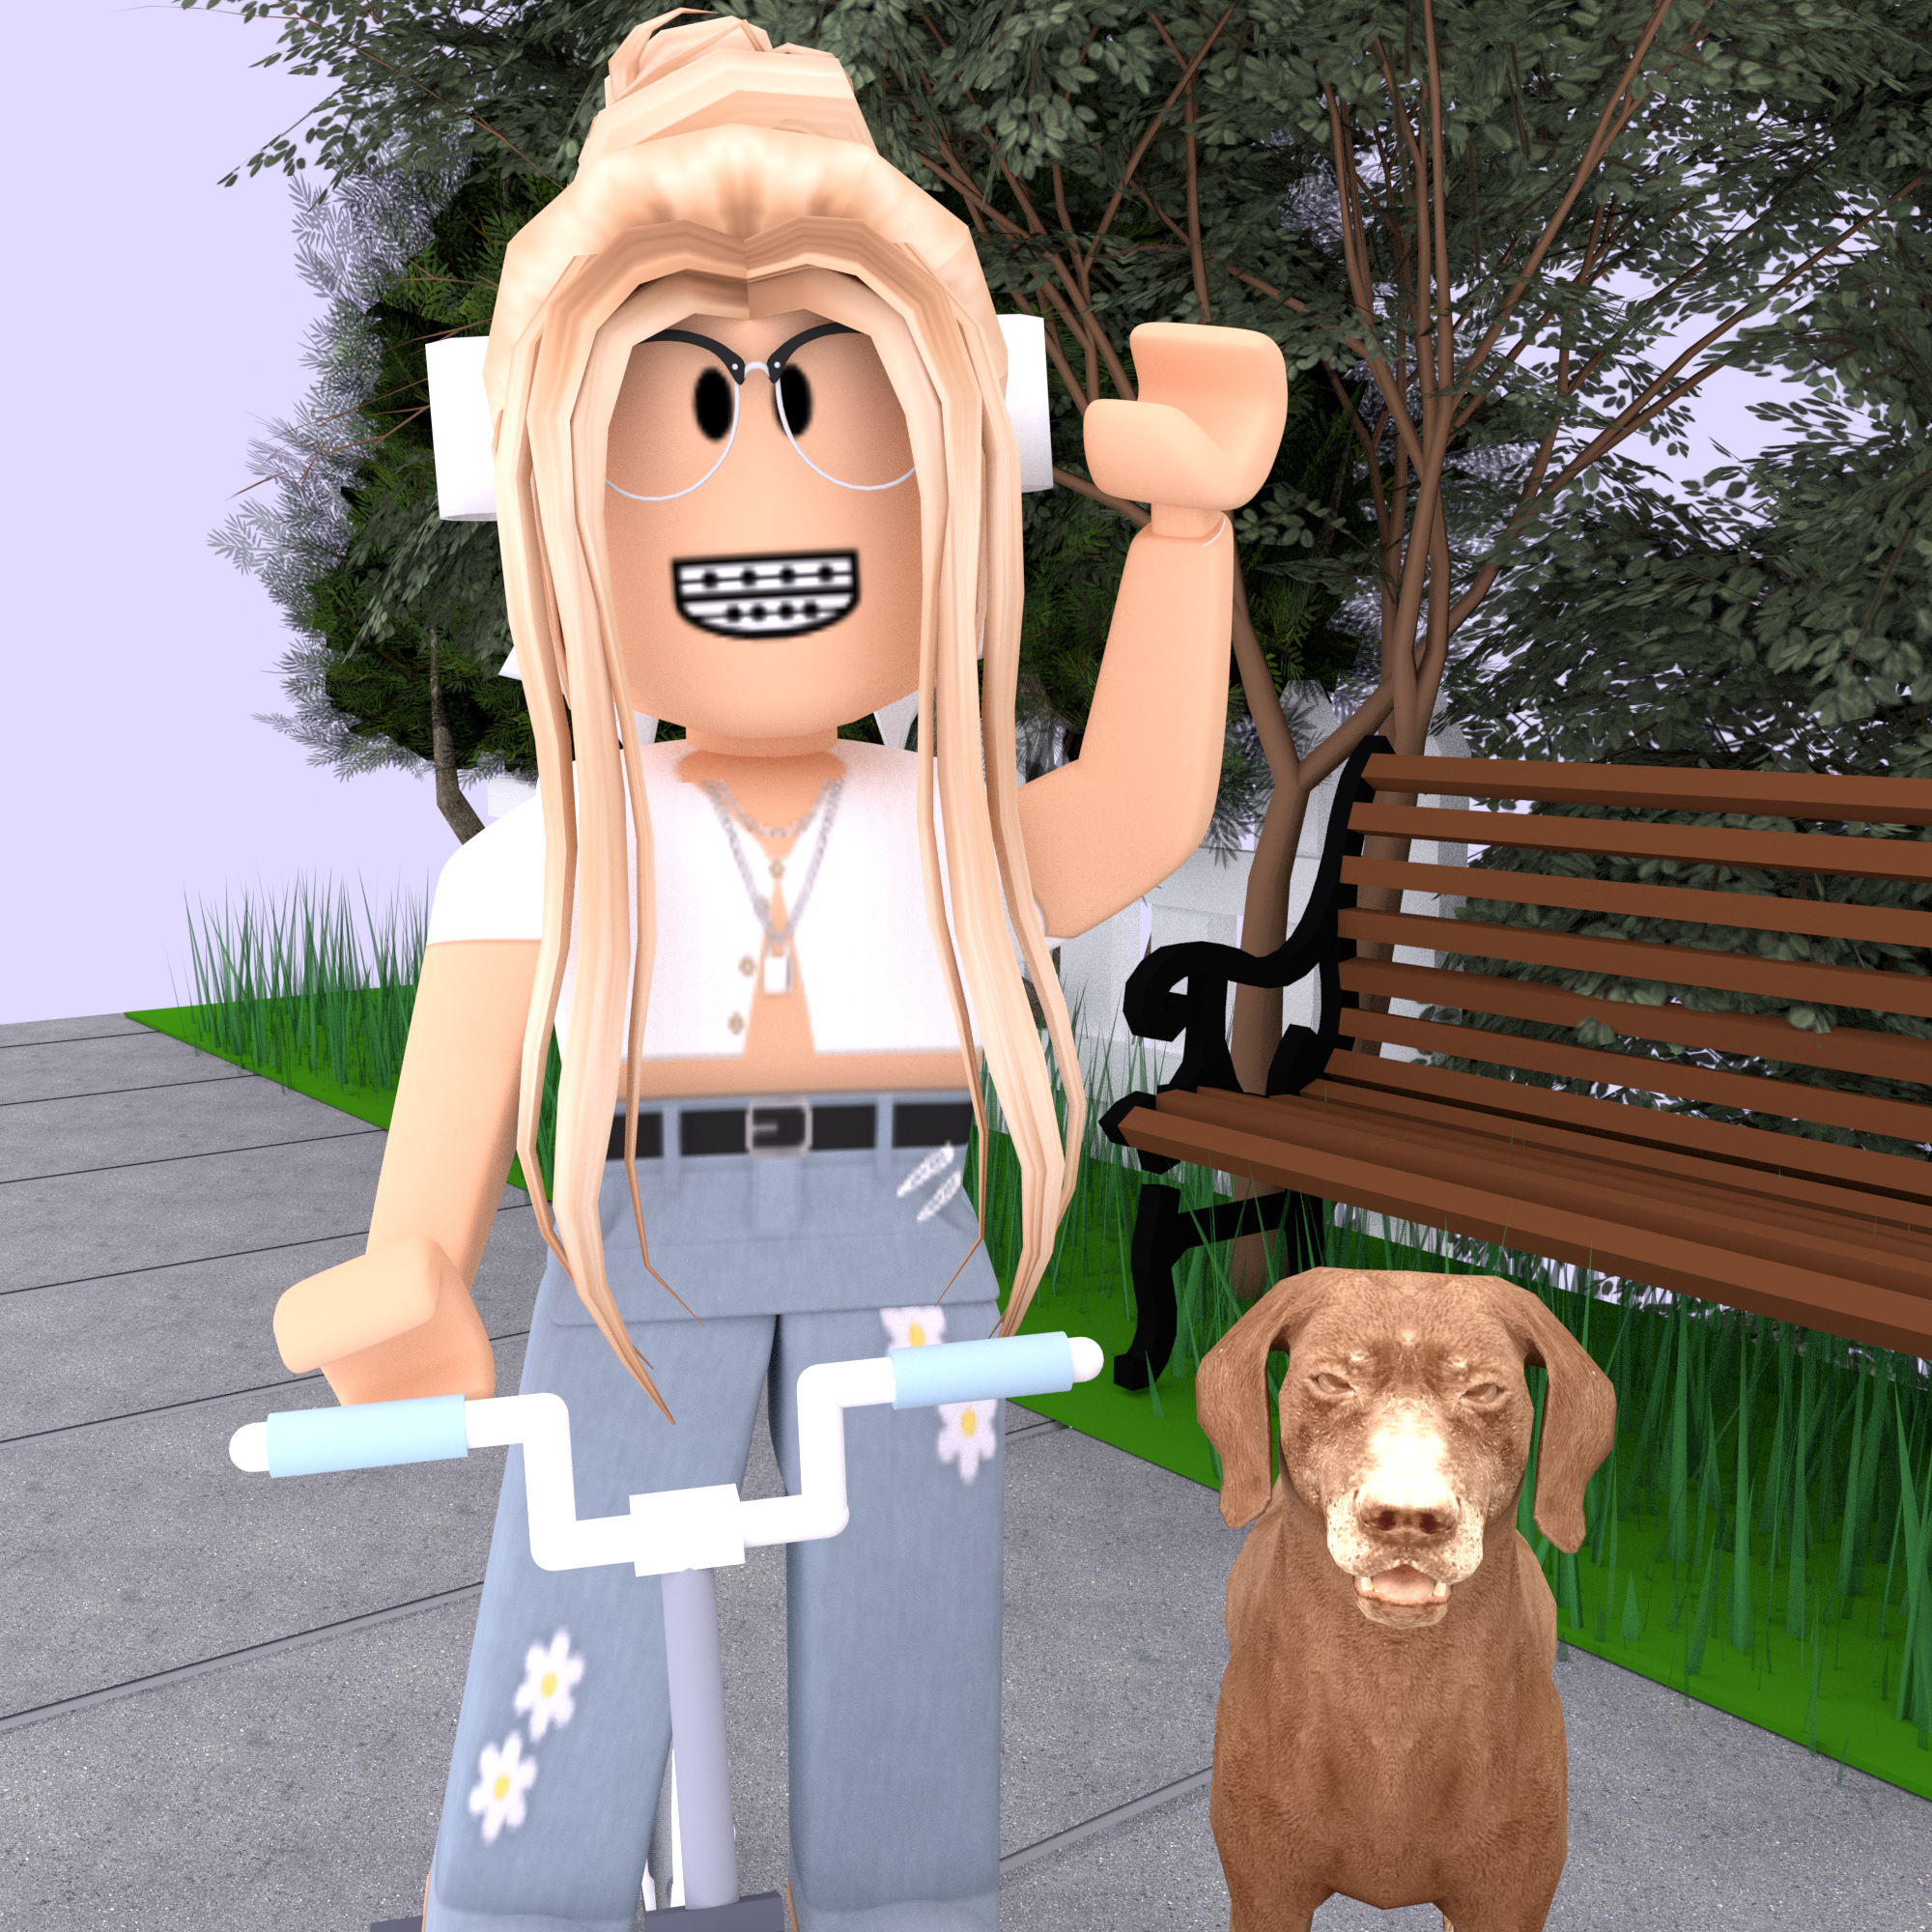 G F X Roblox Pictures Cute Tumblr Wallpaper Roblox Animation